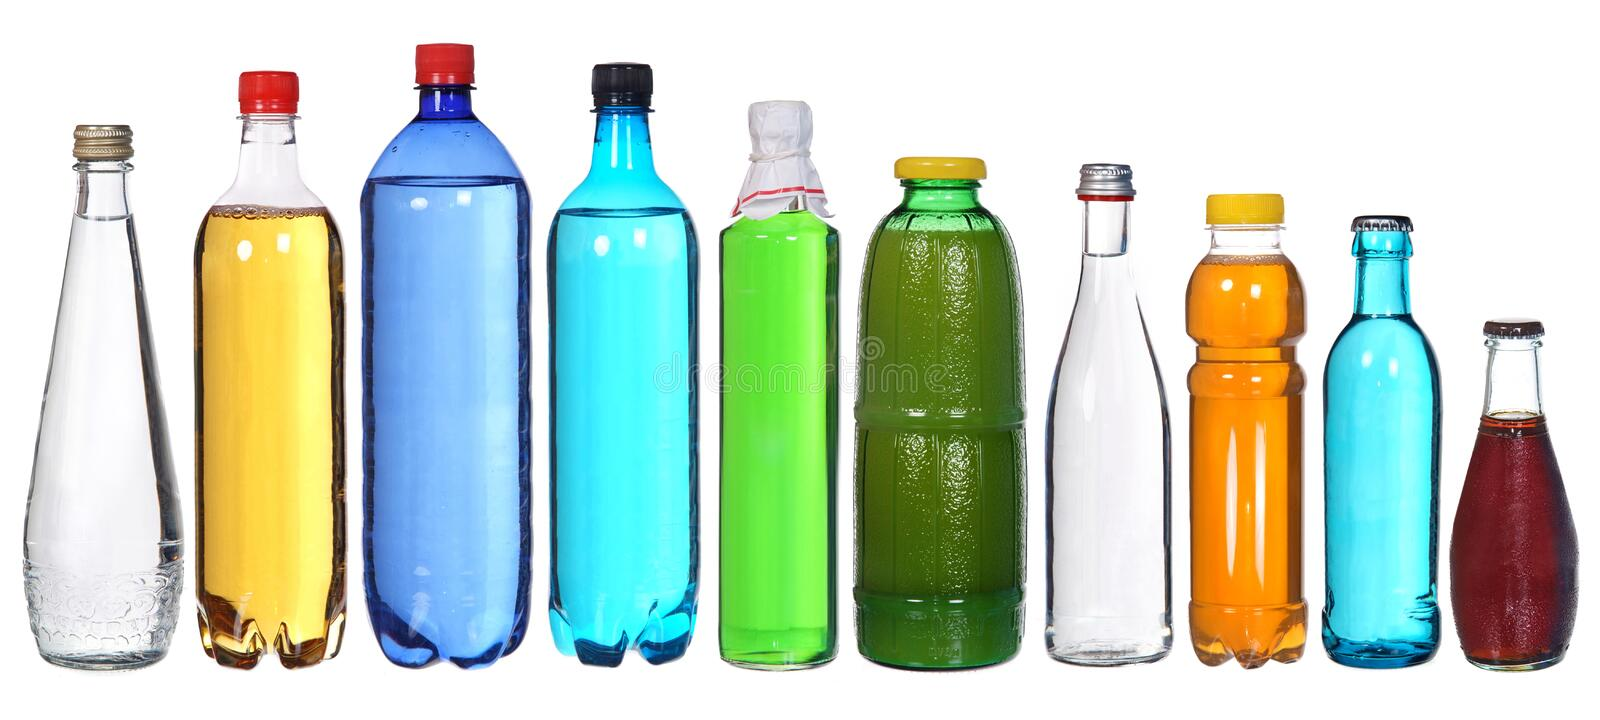 Collection of different bottles. Isolated on white royalty free stock photo